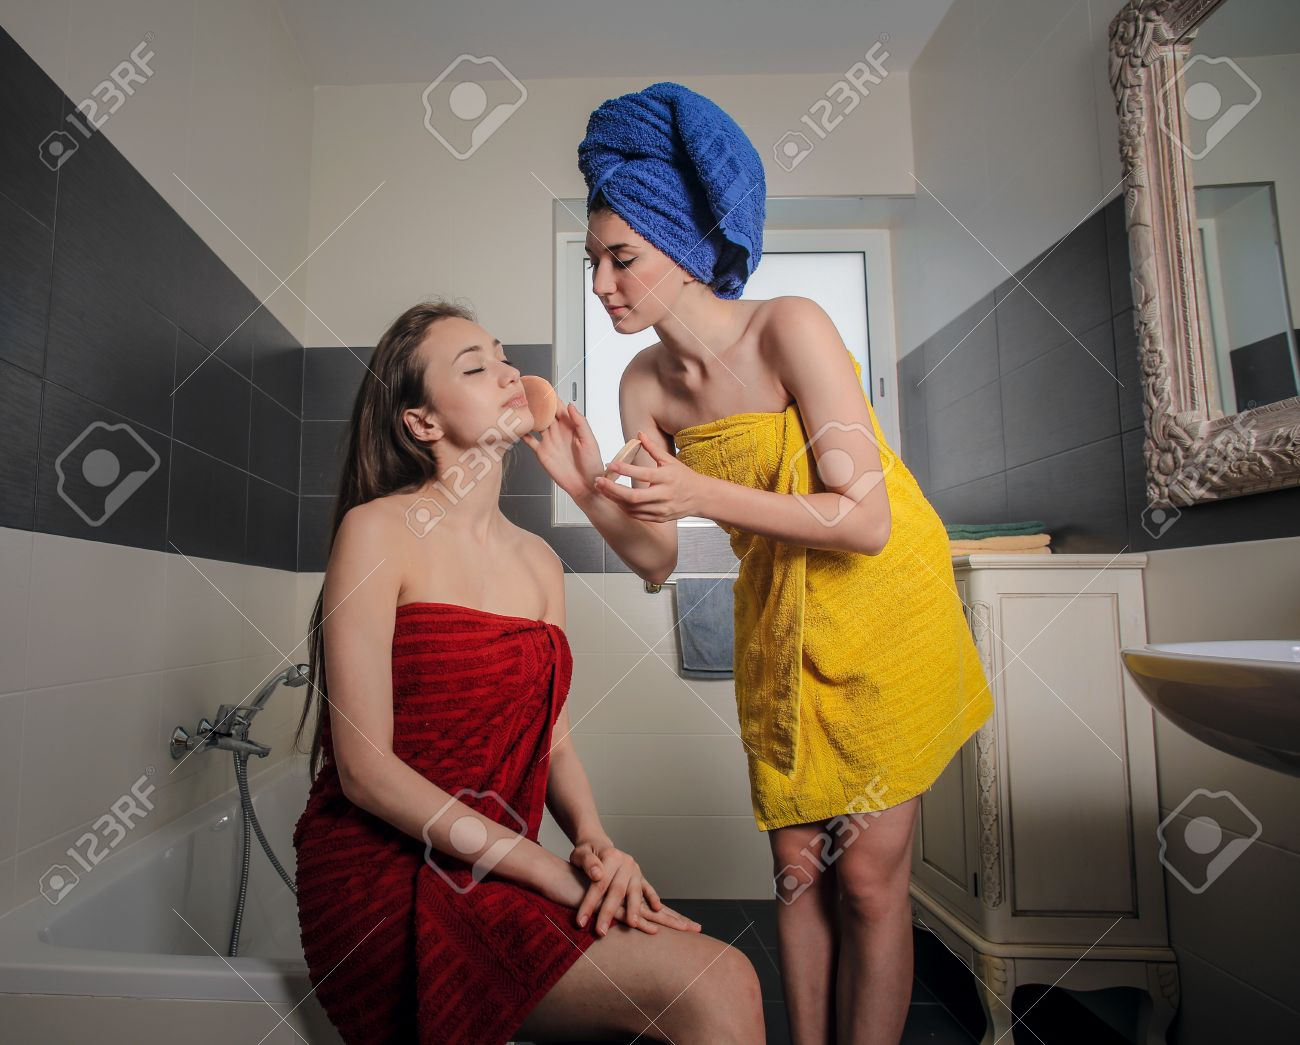 Girls In The Bathroom Getting Ready To Go Out Stock Photo   44205693